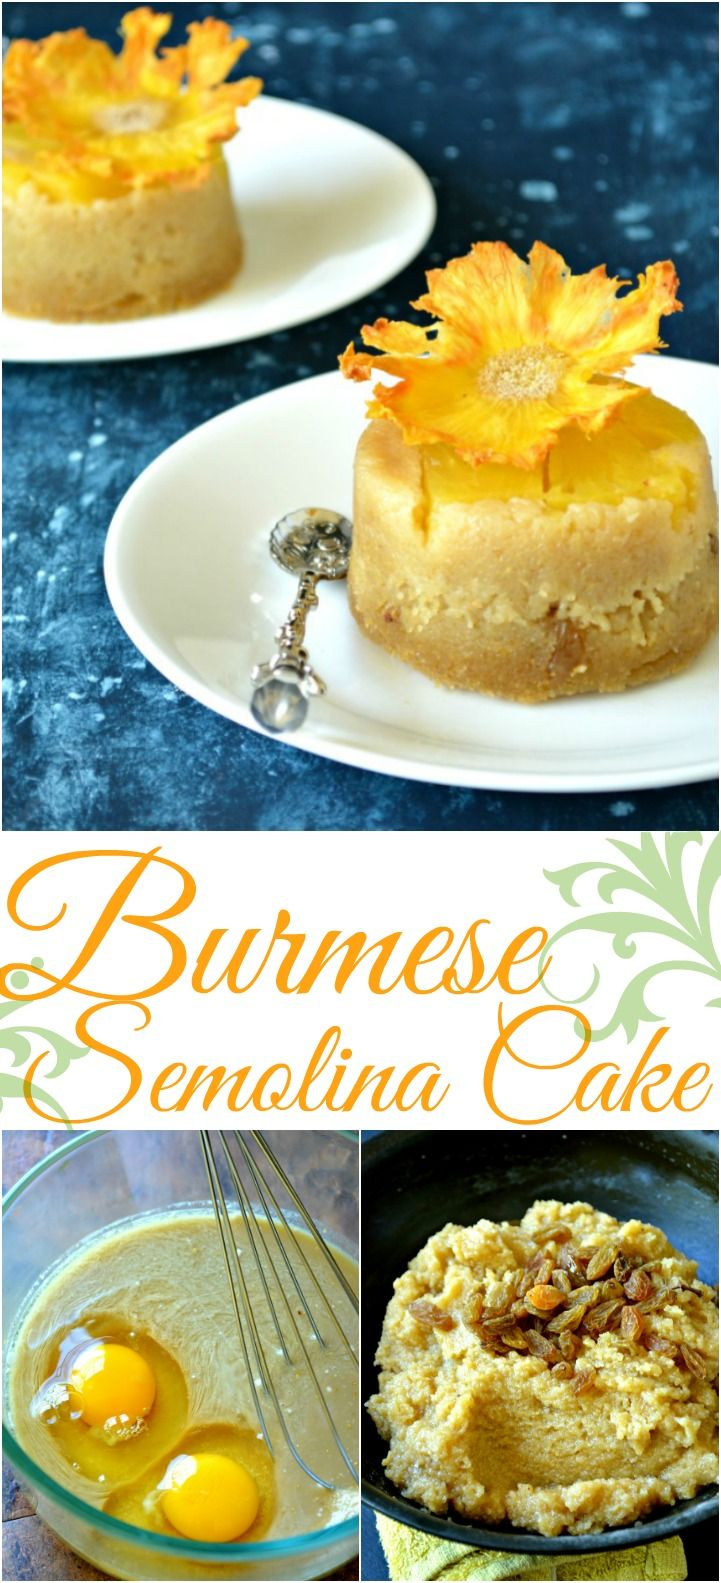 Burmese Semolina Cake - Sanwei Makhin/Shwe Gyi Mont/Sanwin Makhin - A simple dessert with Indian roots, this Burmese dessert is perfect with that cup of afternoon tea.